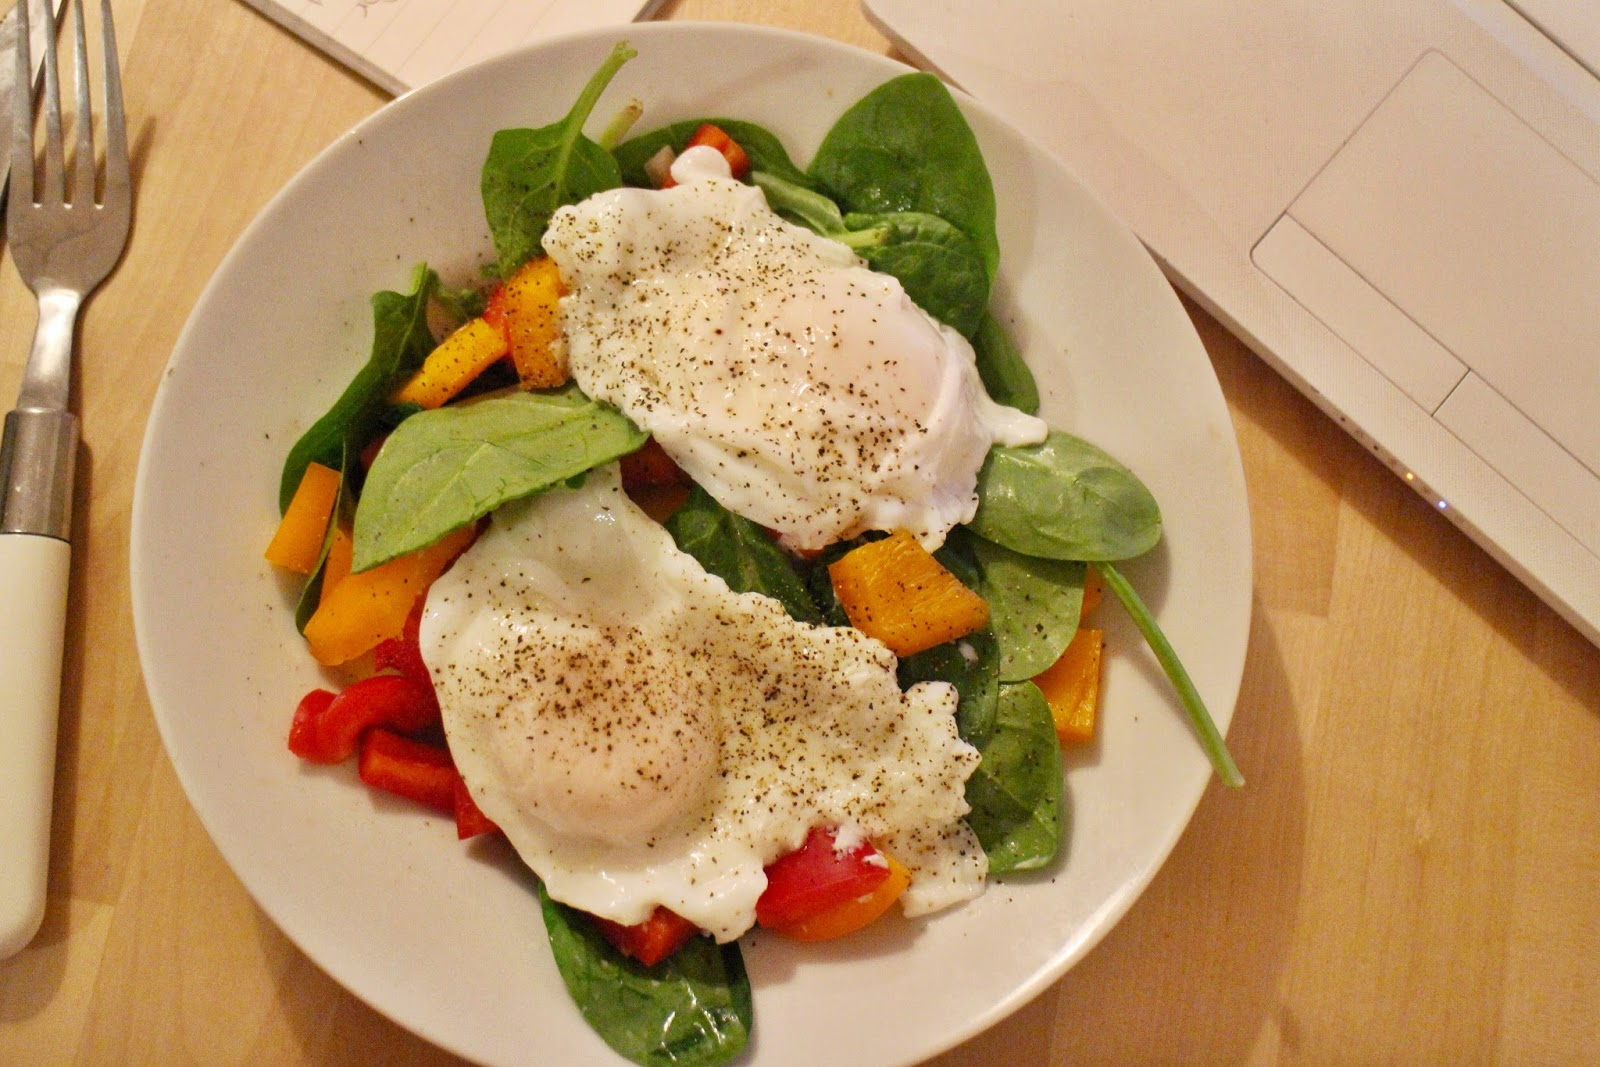 Poached Eggs and Spinach Salad